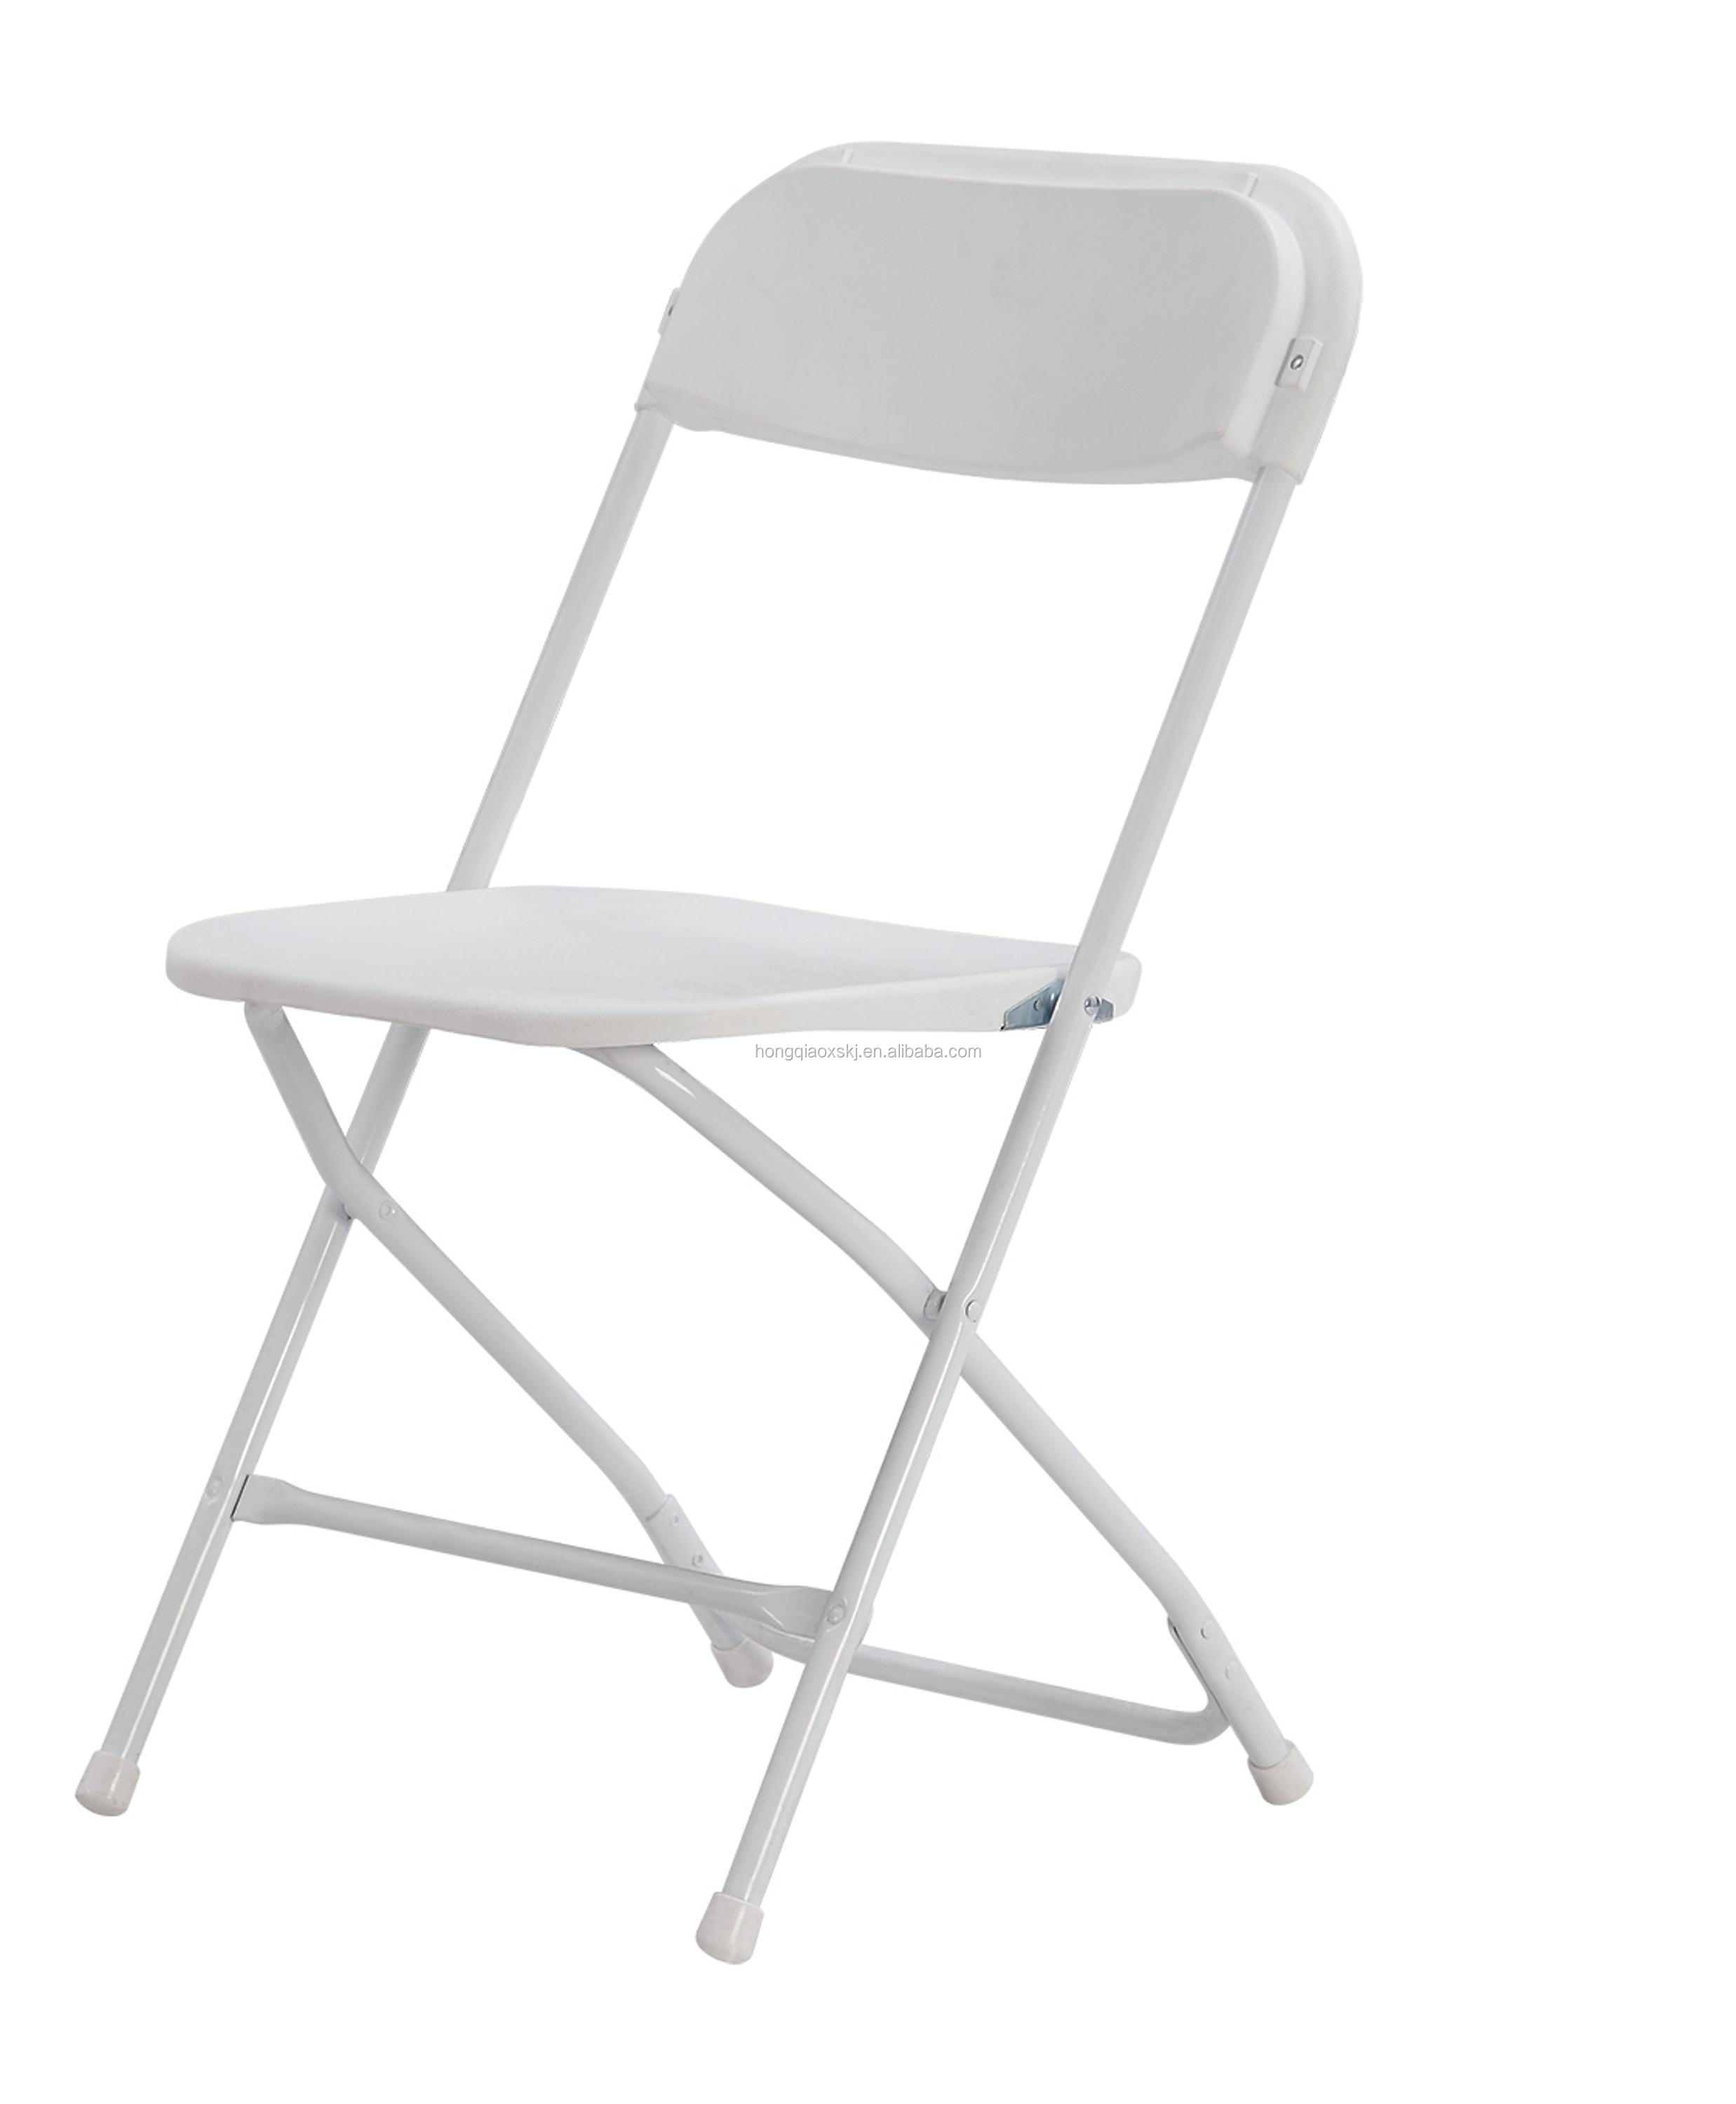 Plastic Folding Chair Plastic Folding Chair Suppliers and